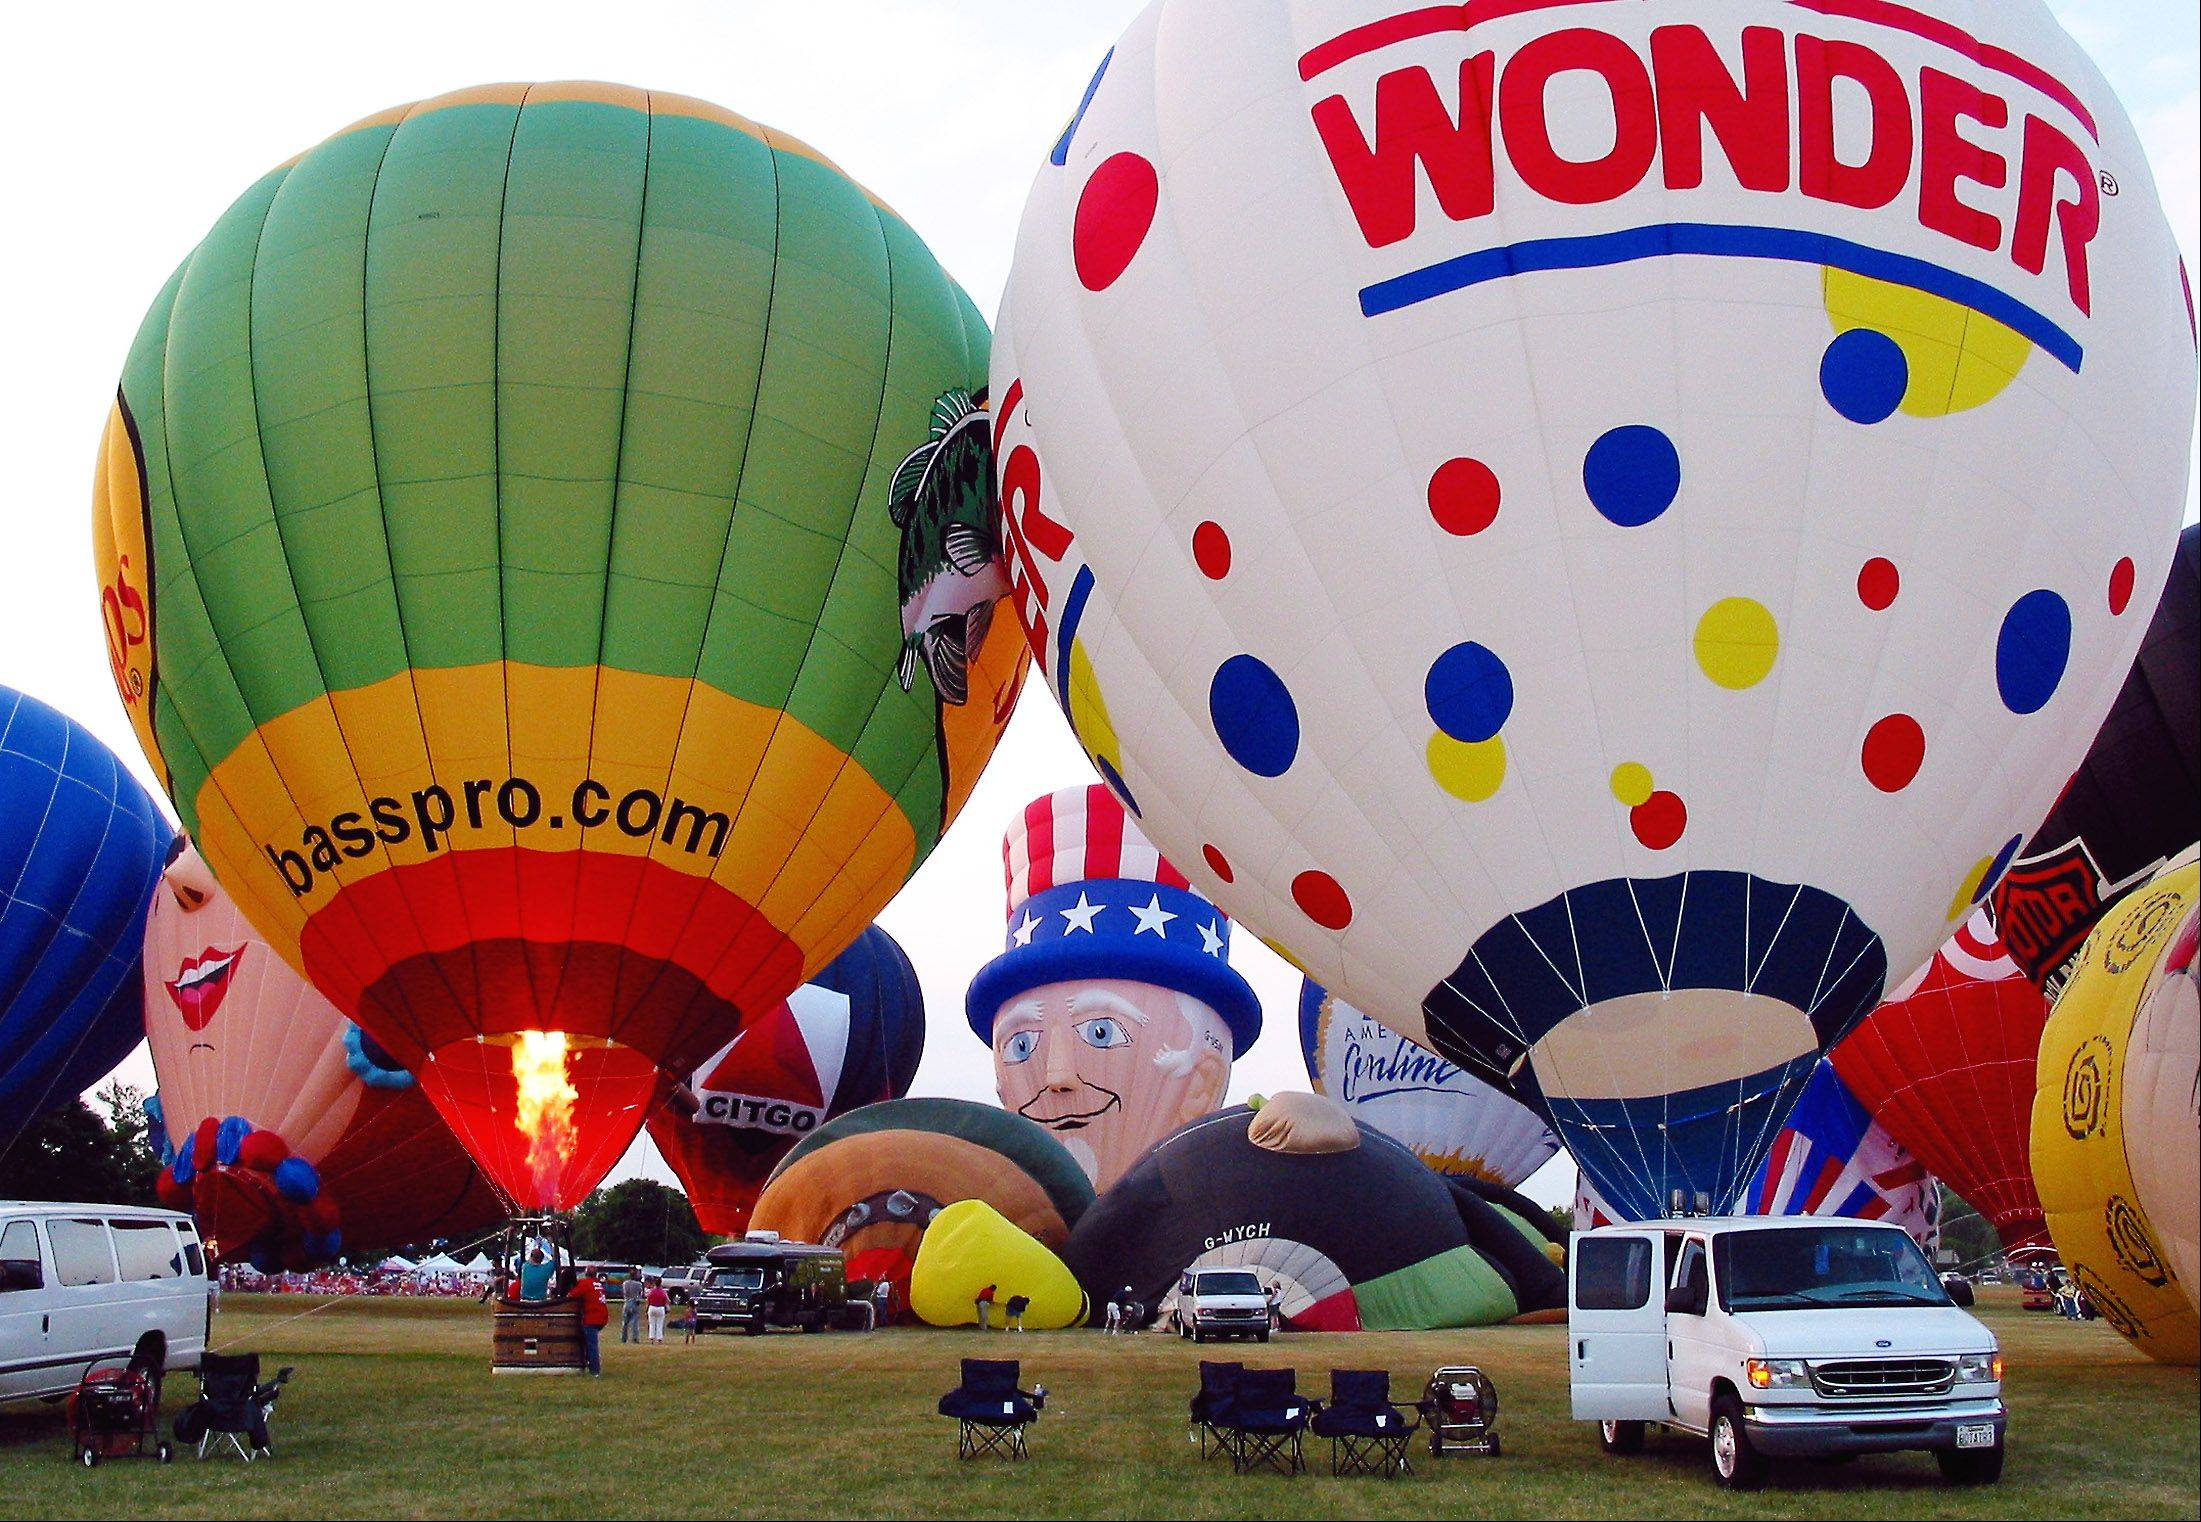 The Eyes to the Skies hot-air balloon festival in Lisle draws more than 150,000 people. This year's event starts July 3 in Lisle Community Park.